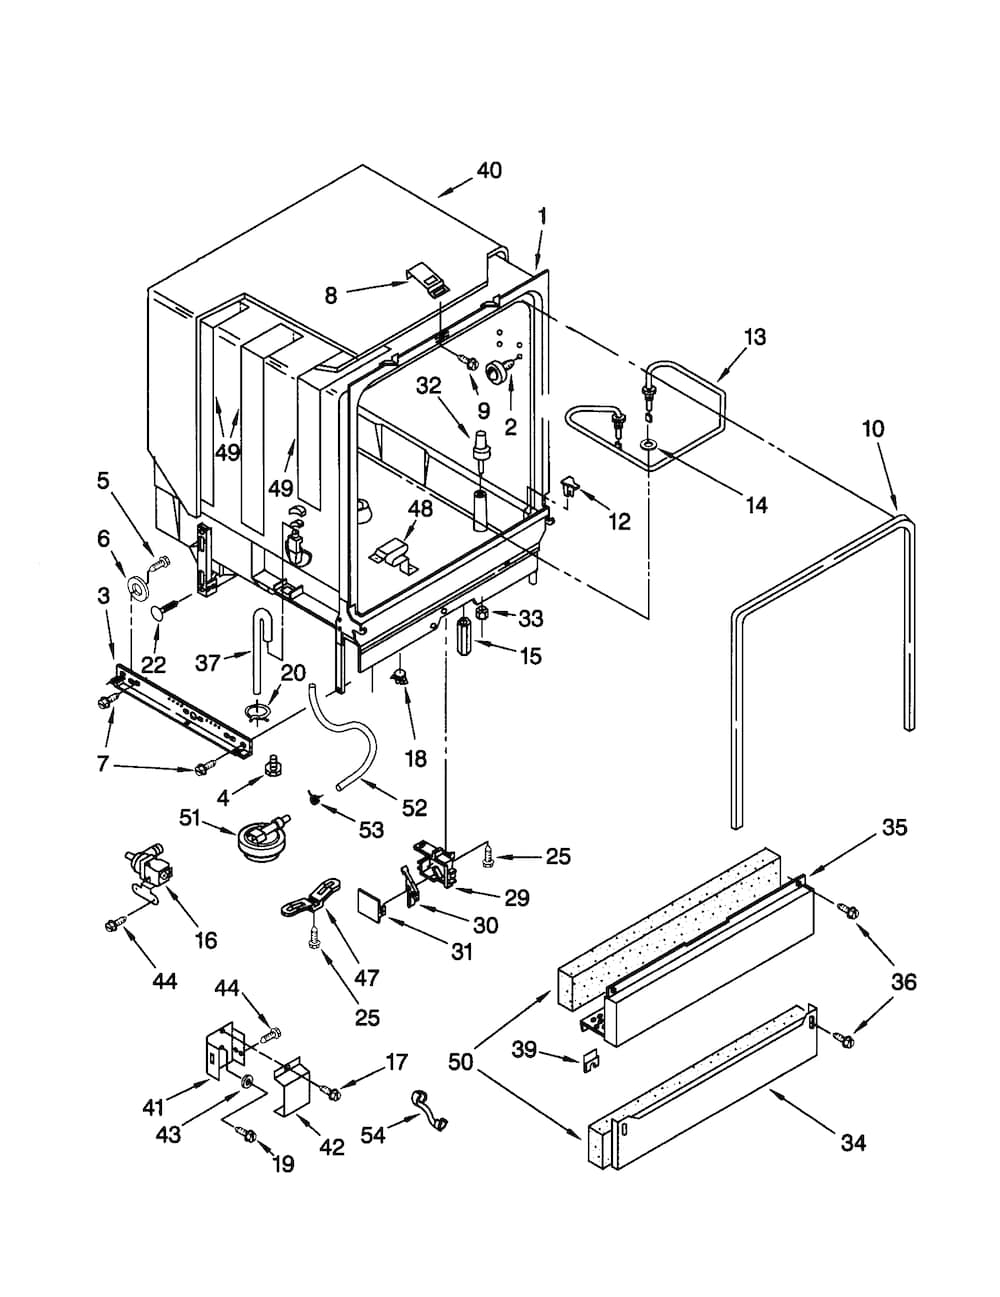 wiring diagram for kenmore dishwasher kenmore ultra wash dishwasher parts diagram | automotive ...